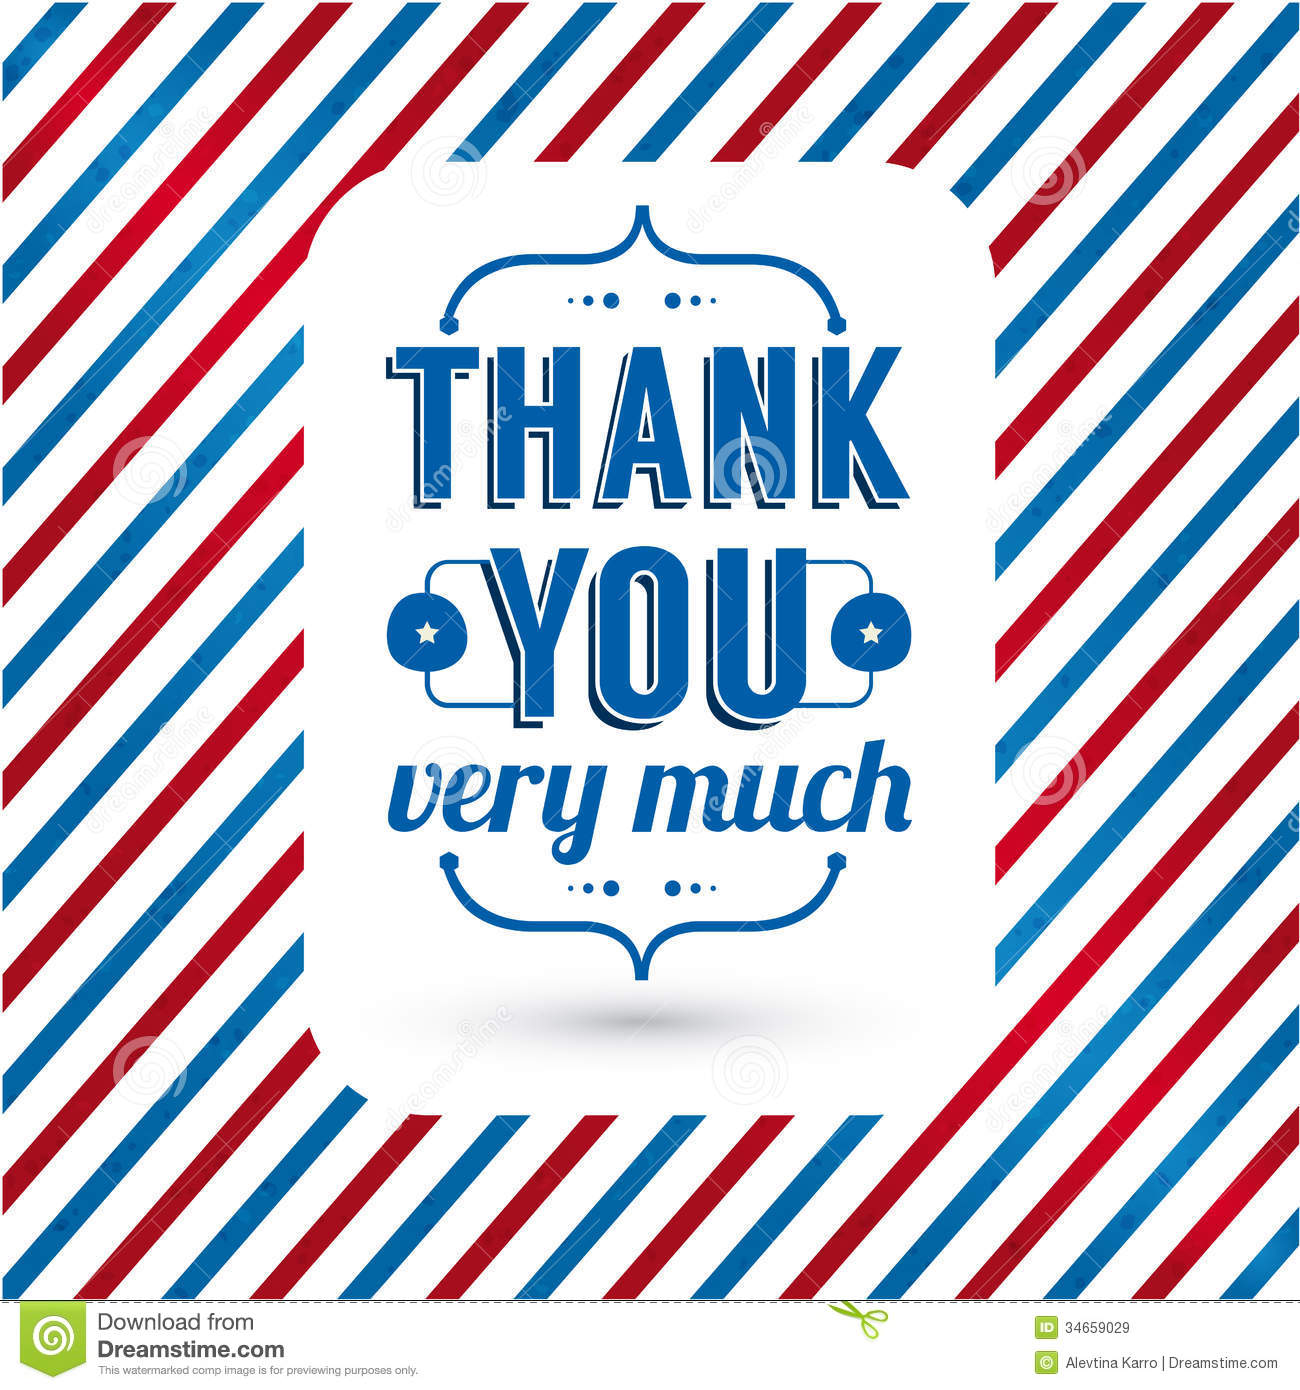 Thank You Card On Tricolor Grunge Background. Stock Vector.